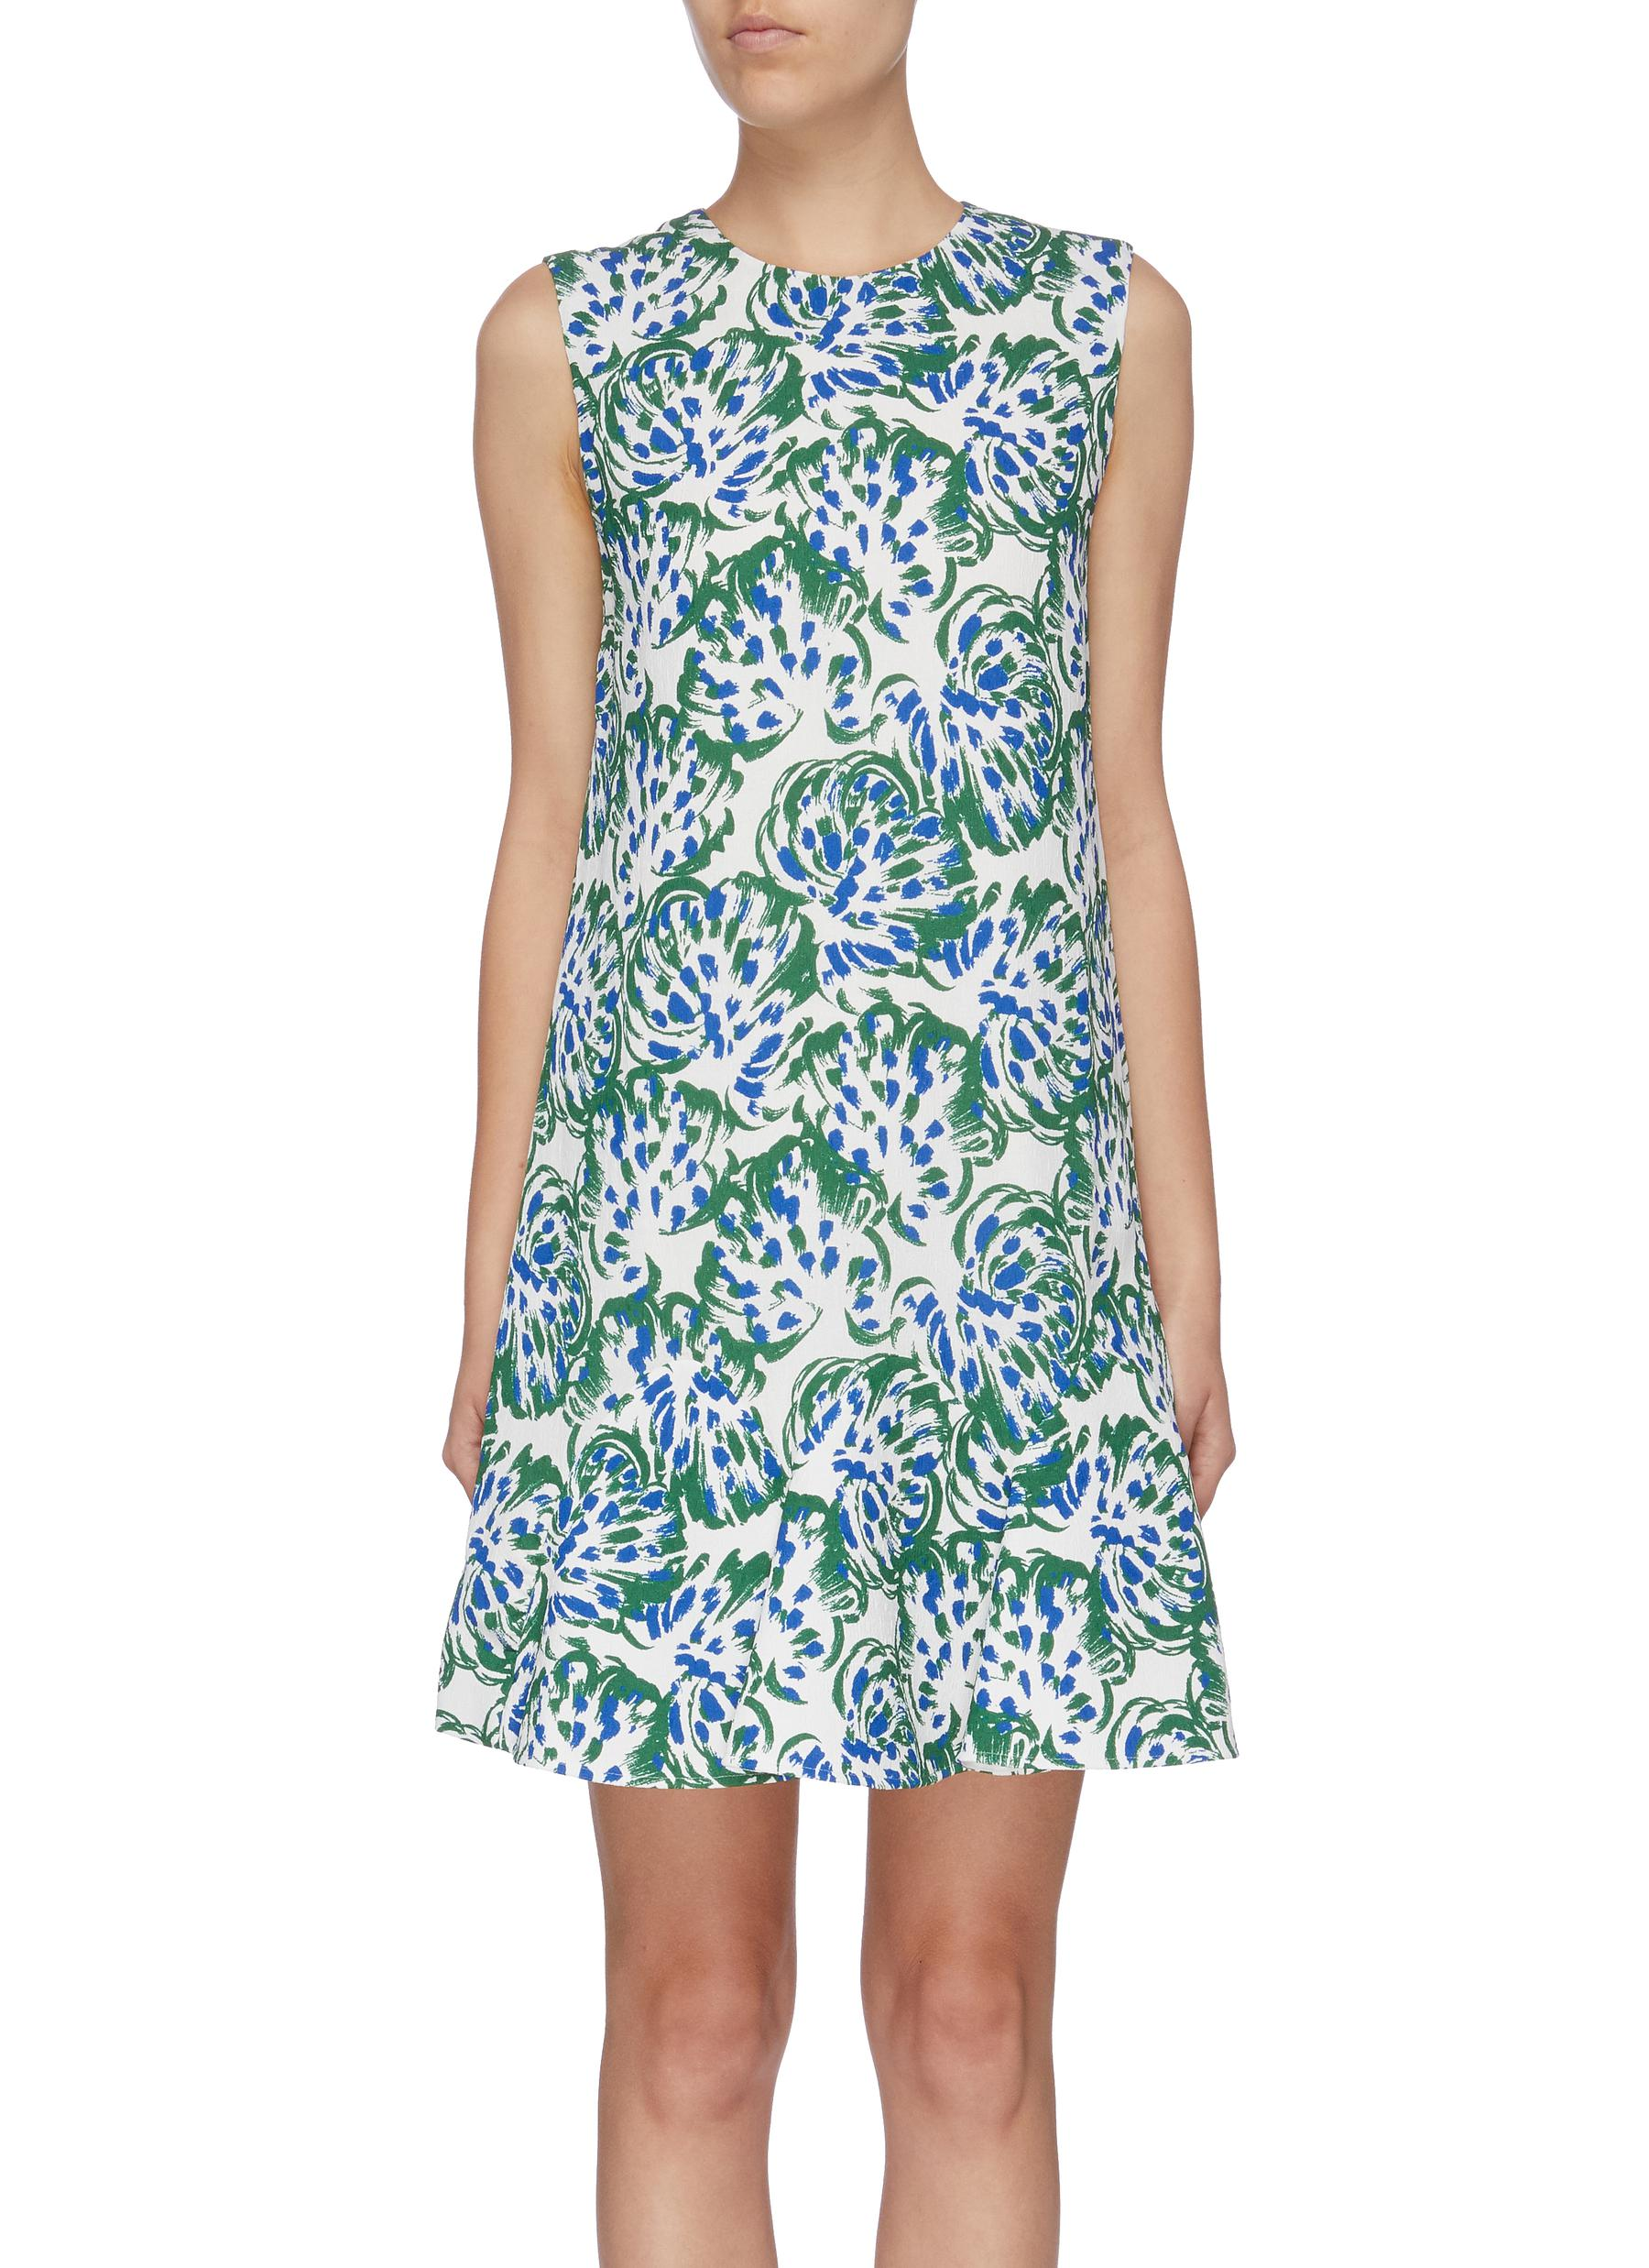 Ruffle hem abstract floral print sleeveless dress by Victoria, Victoria Beckham